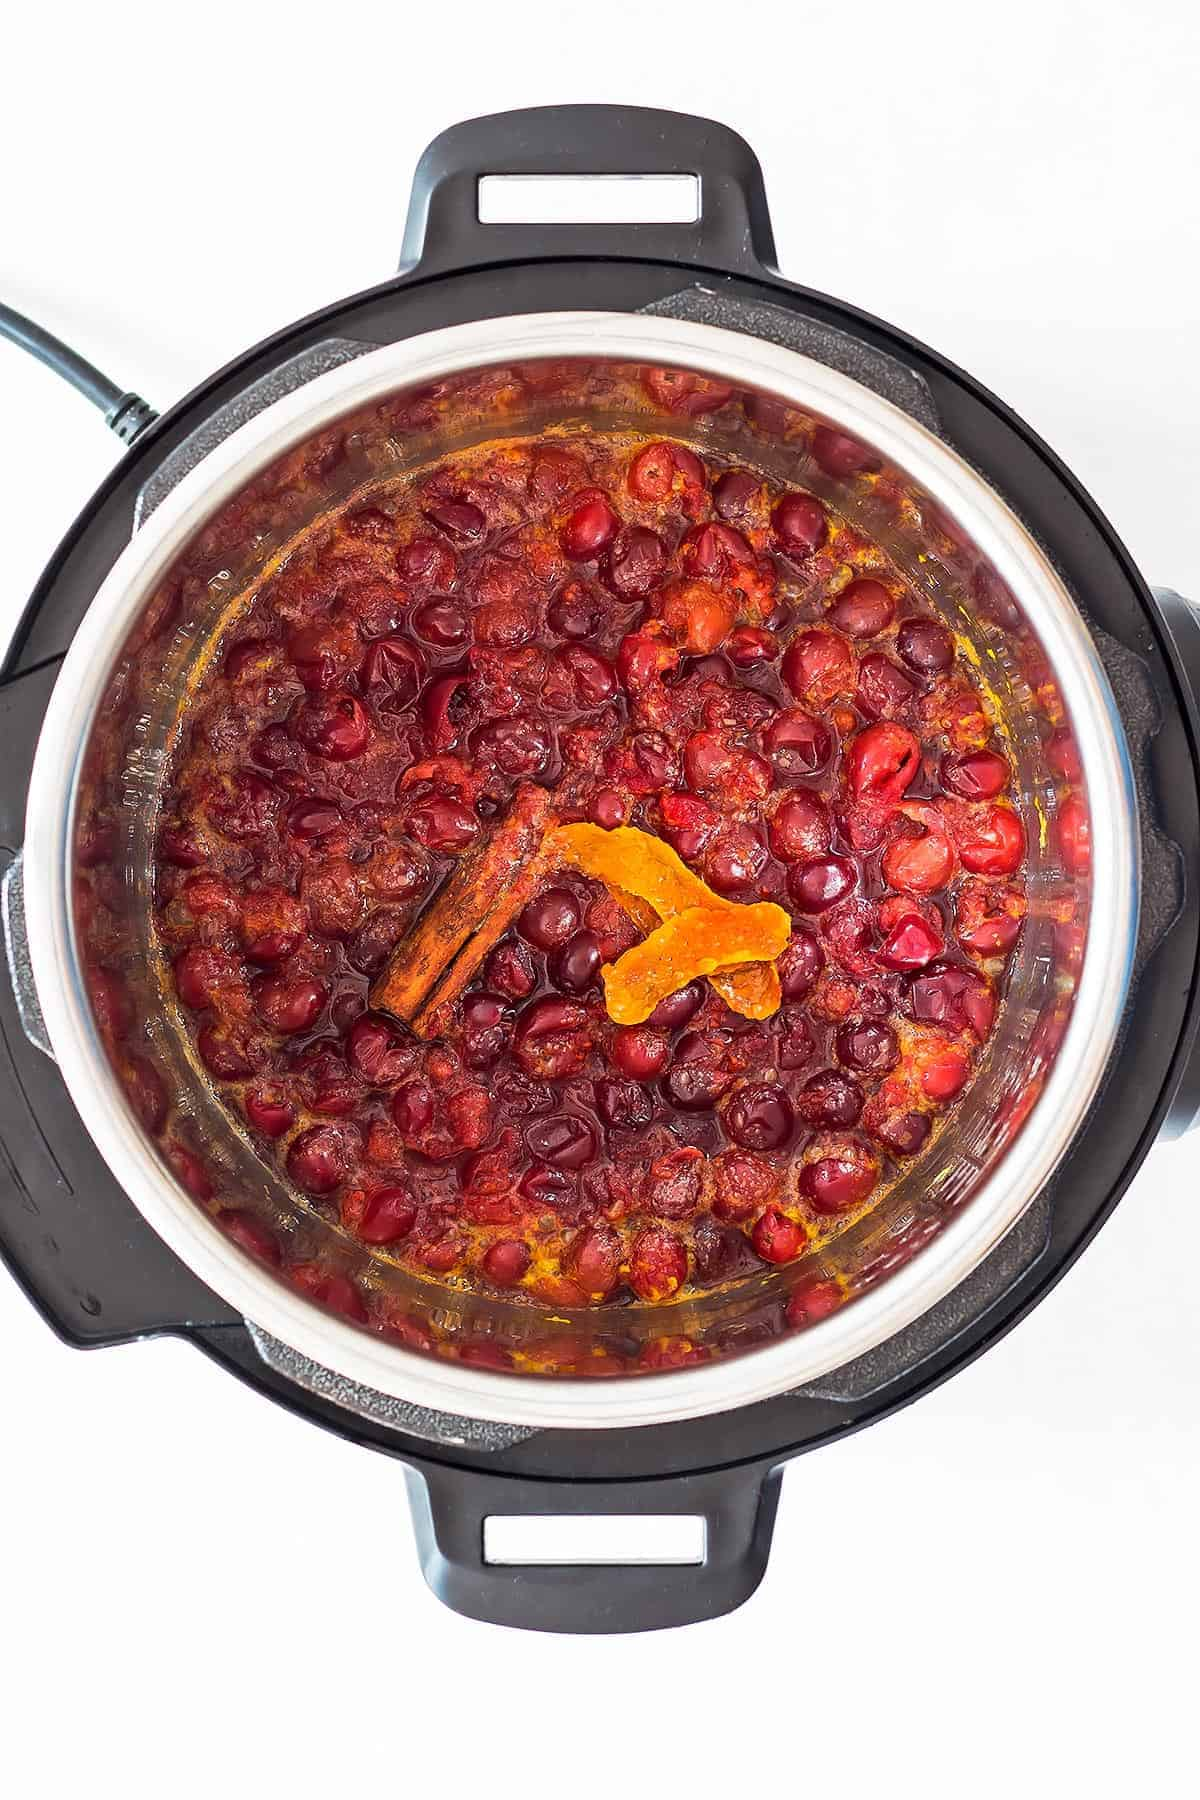 Cooked Instant Pot Cranberry Sauce